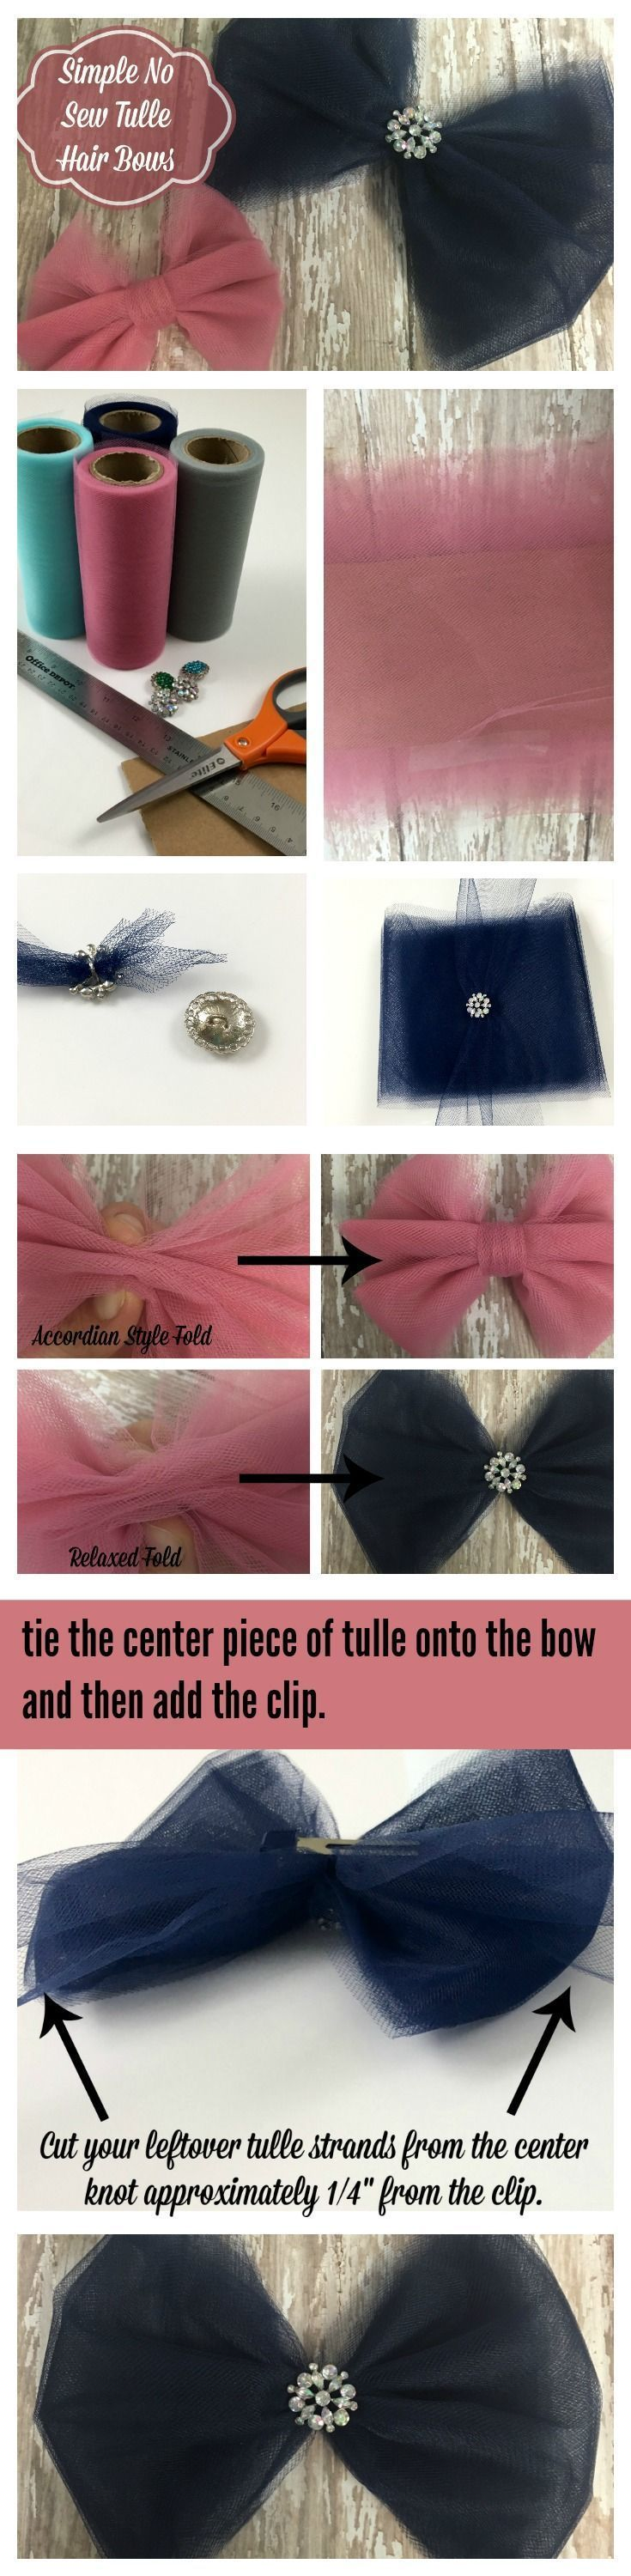 Tulle Hair Bows | How to make Tulle Bows in simple easy steps. No sewing required!